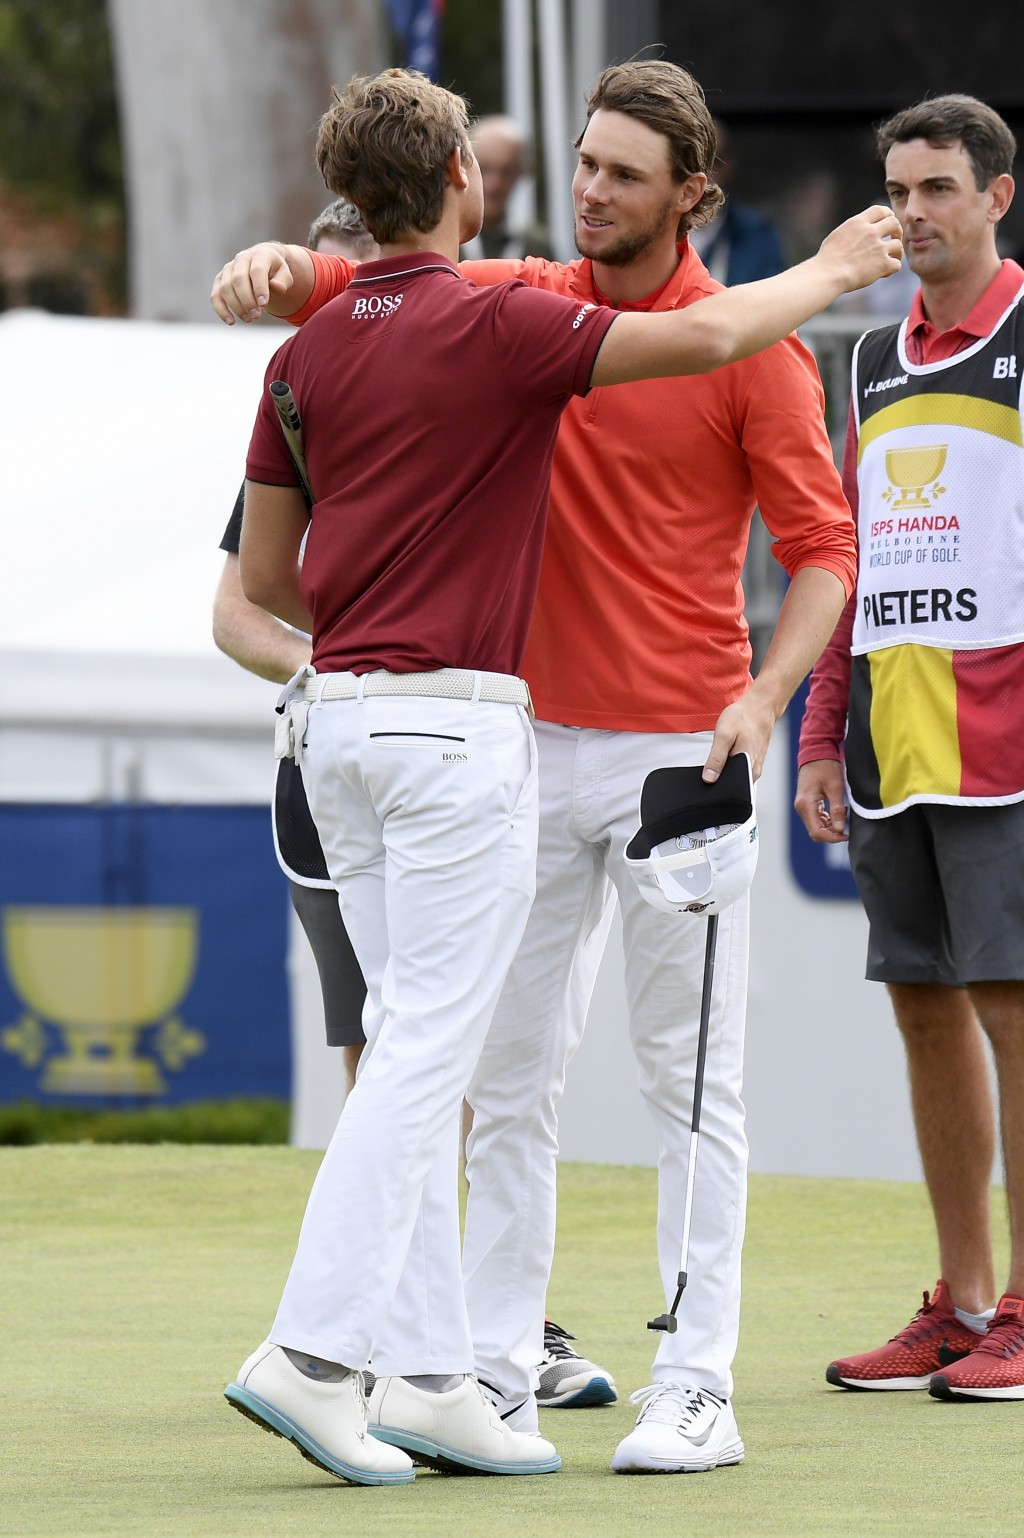 Belgium's Thomas Detry, left, and Thomas Pieters hug each other on the 18th green after winning the World Cup of Golf in Melbourne, Australia, Sunday,